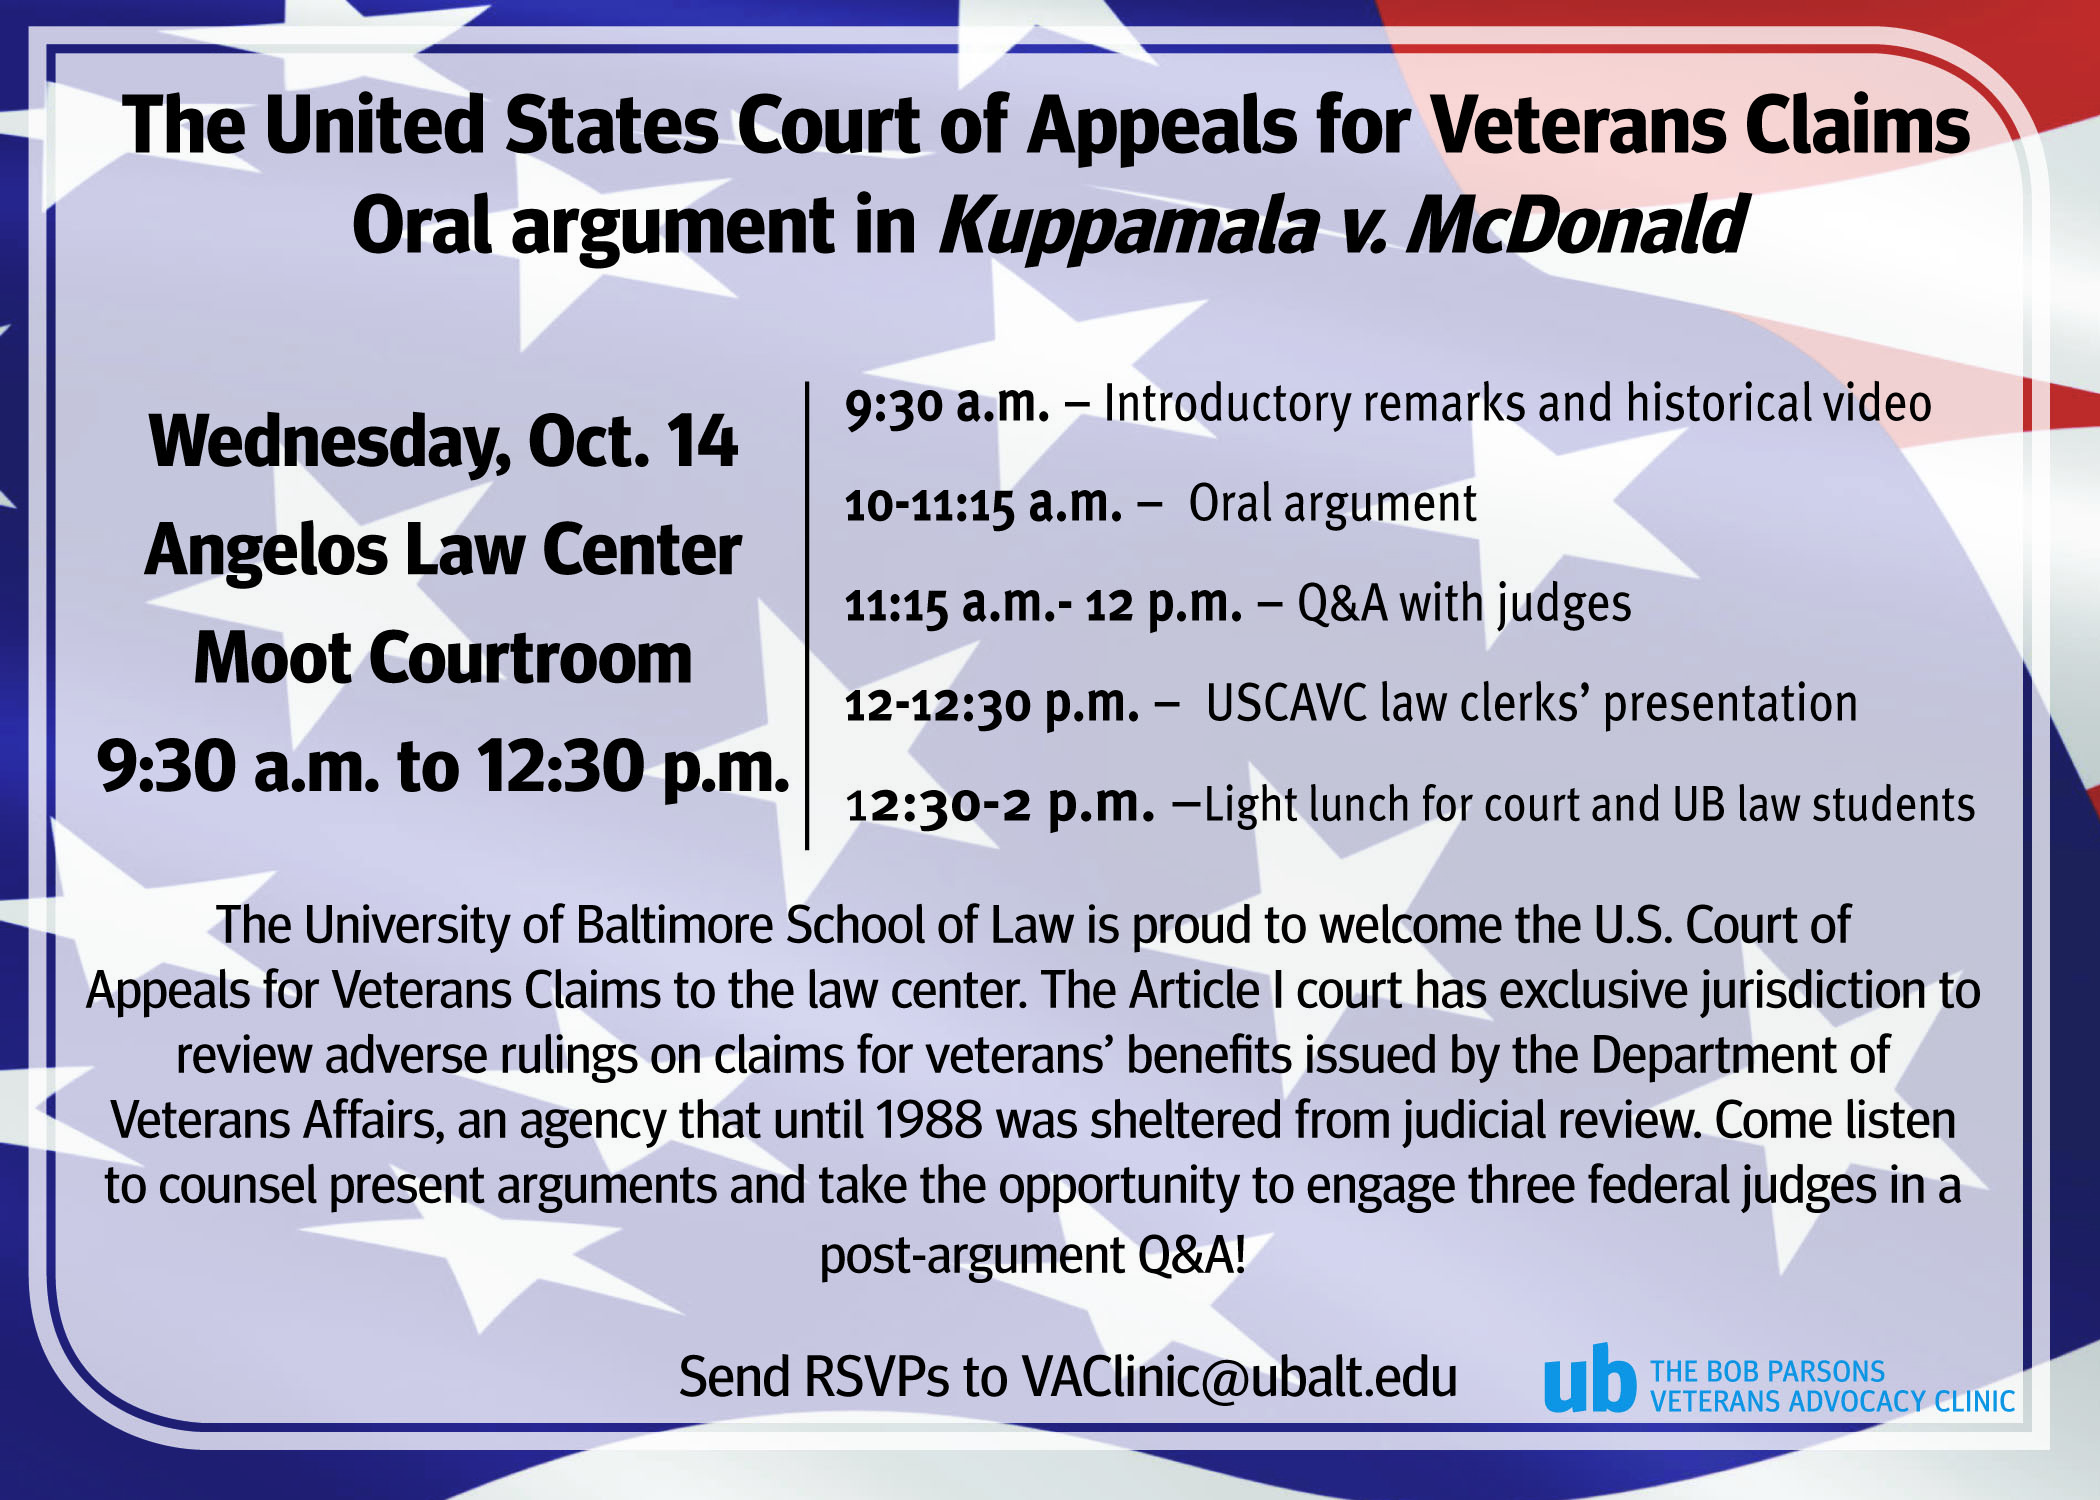 The United States Court of Appeals for Veterans Claims Oral Argument in Kuppamata v. McDonald